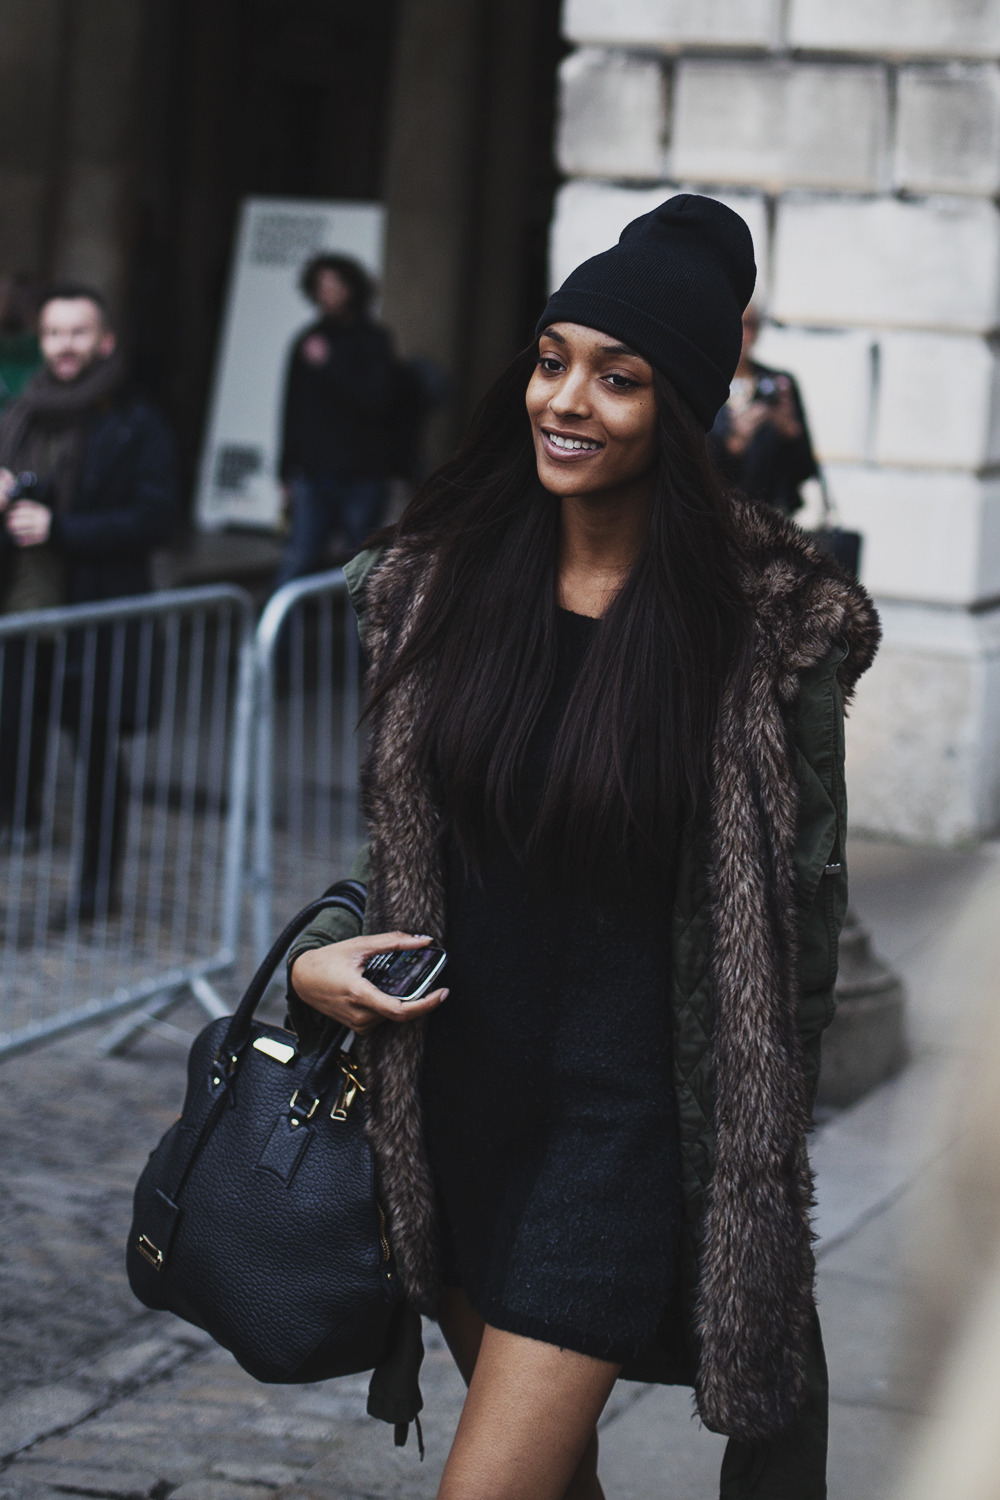 f-ashion-escape:     exhalevogue:  Jourdan Dunn at LFW this afternoon  click for more <3